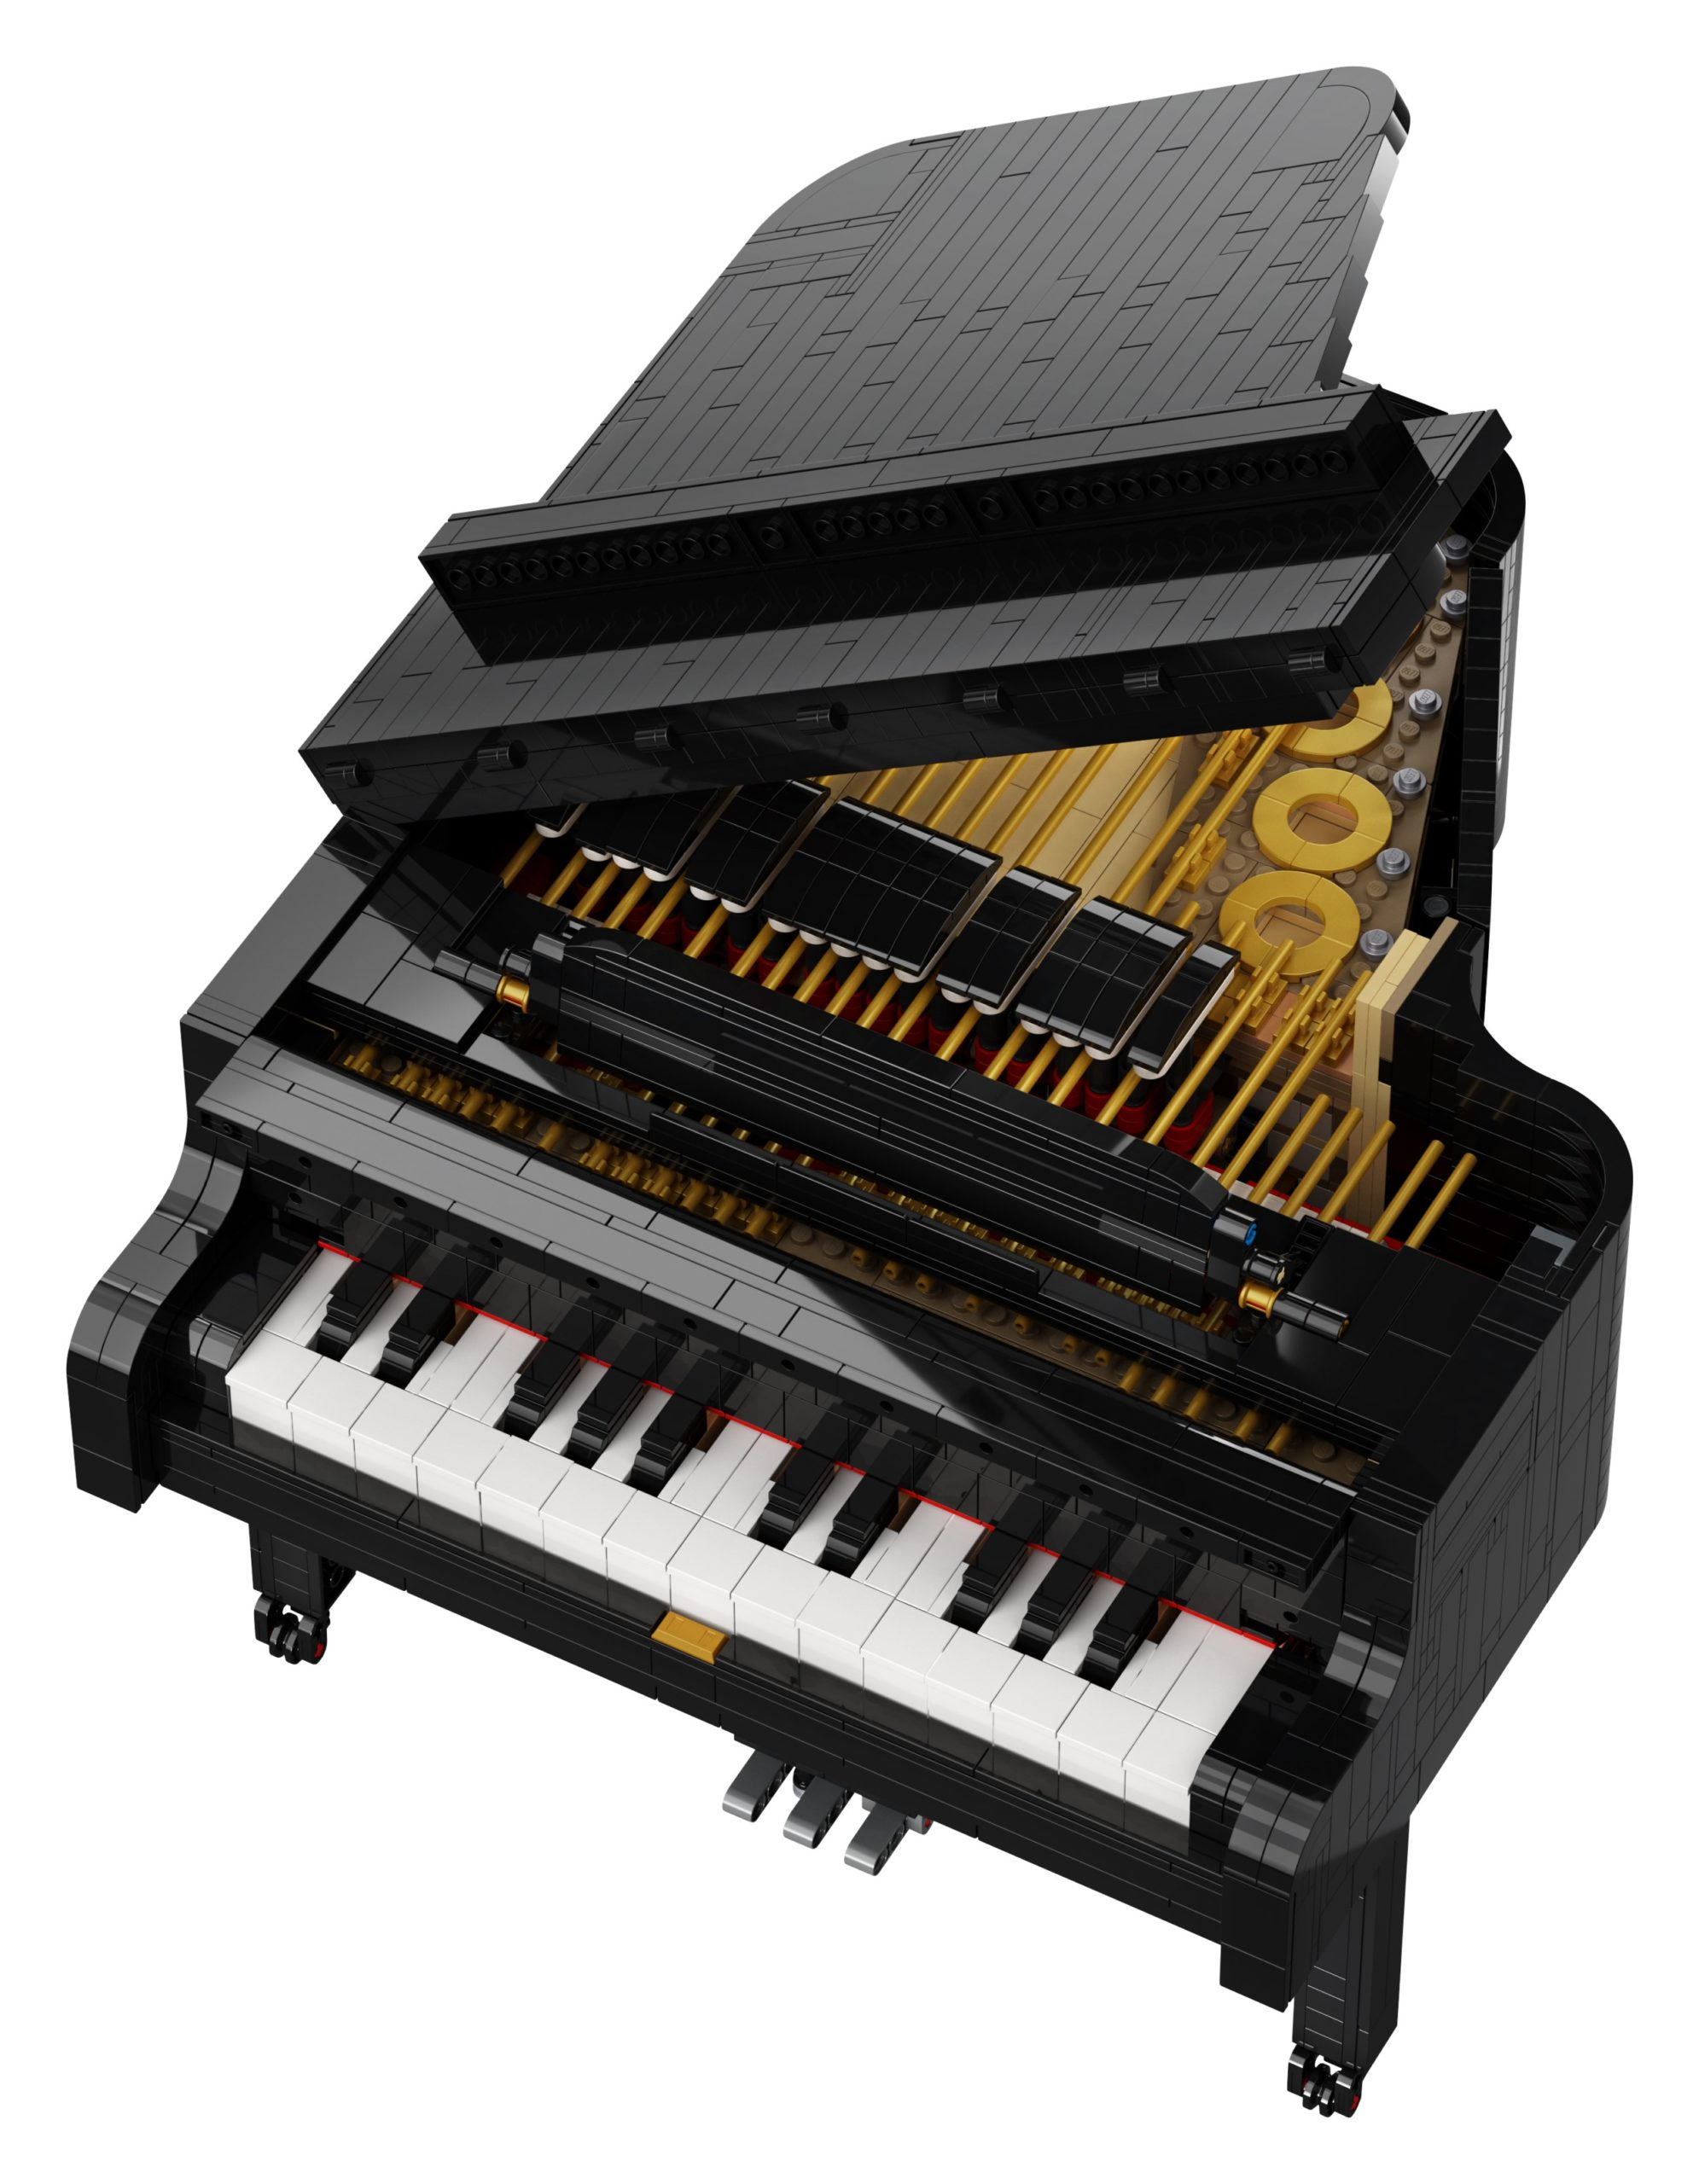 LEGO Ideas Grand Piano set lets you play music for real 16